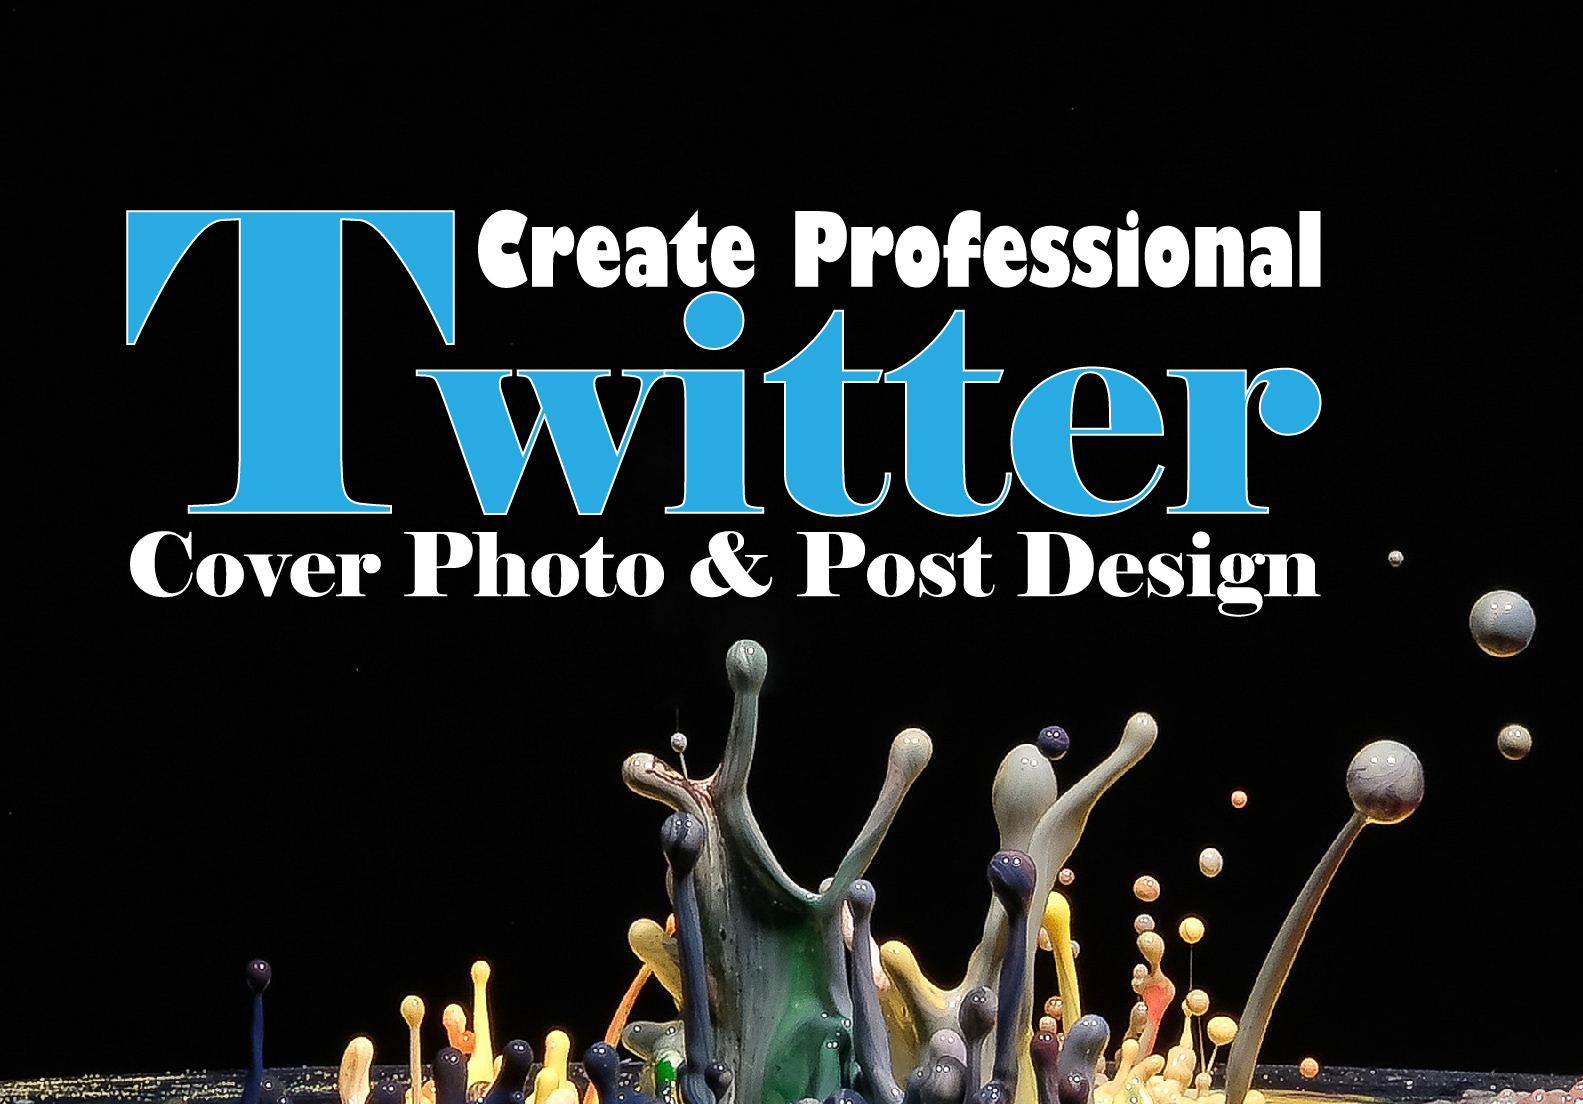 I will create professional Twitter Cover Photo and Post Design